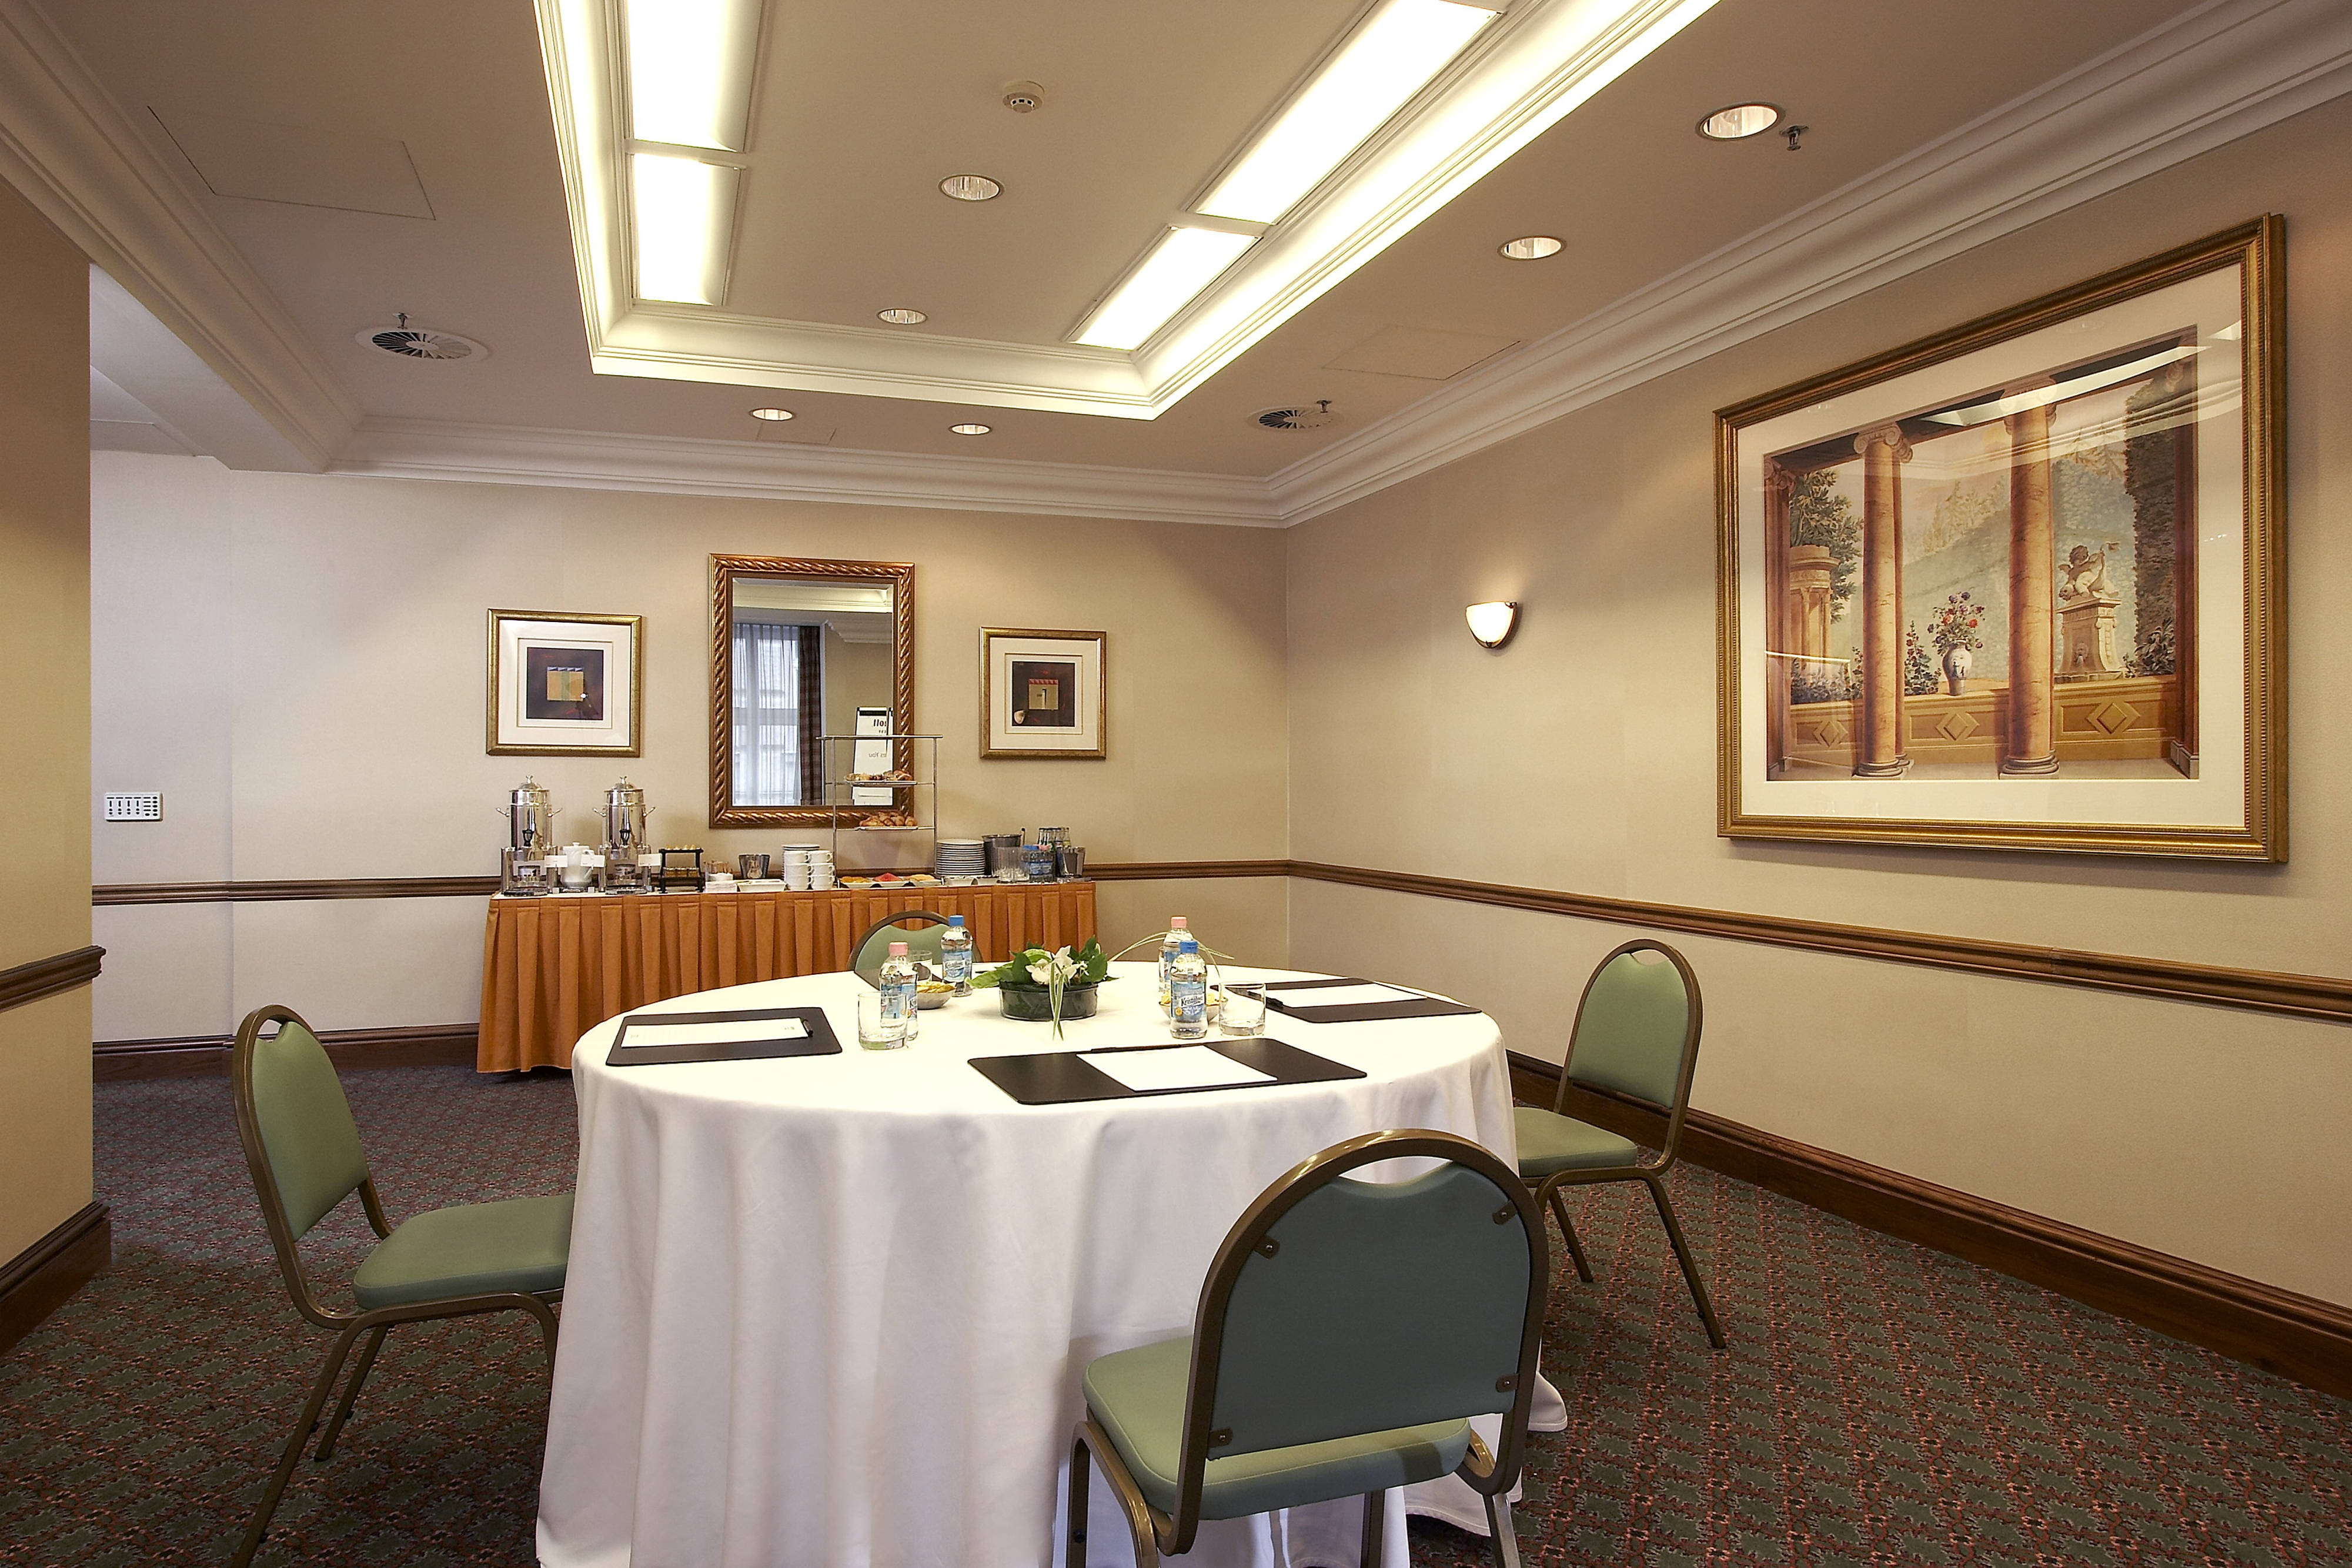 Váci Meeting Room in Budapest